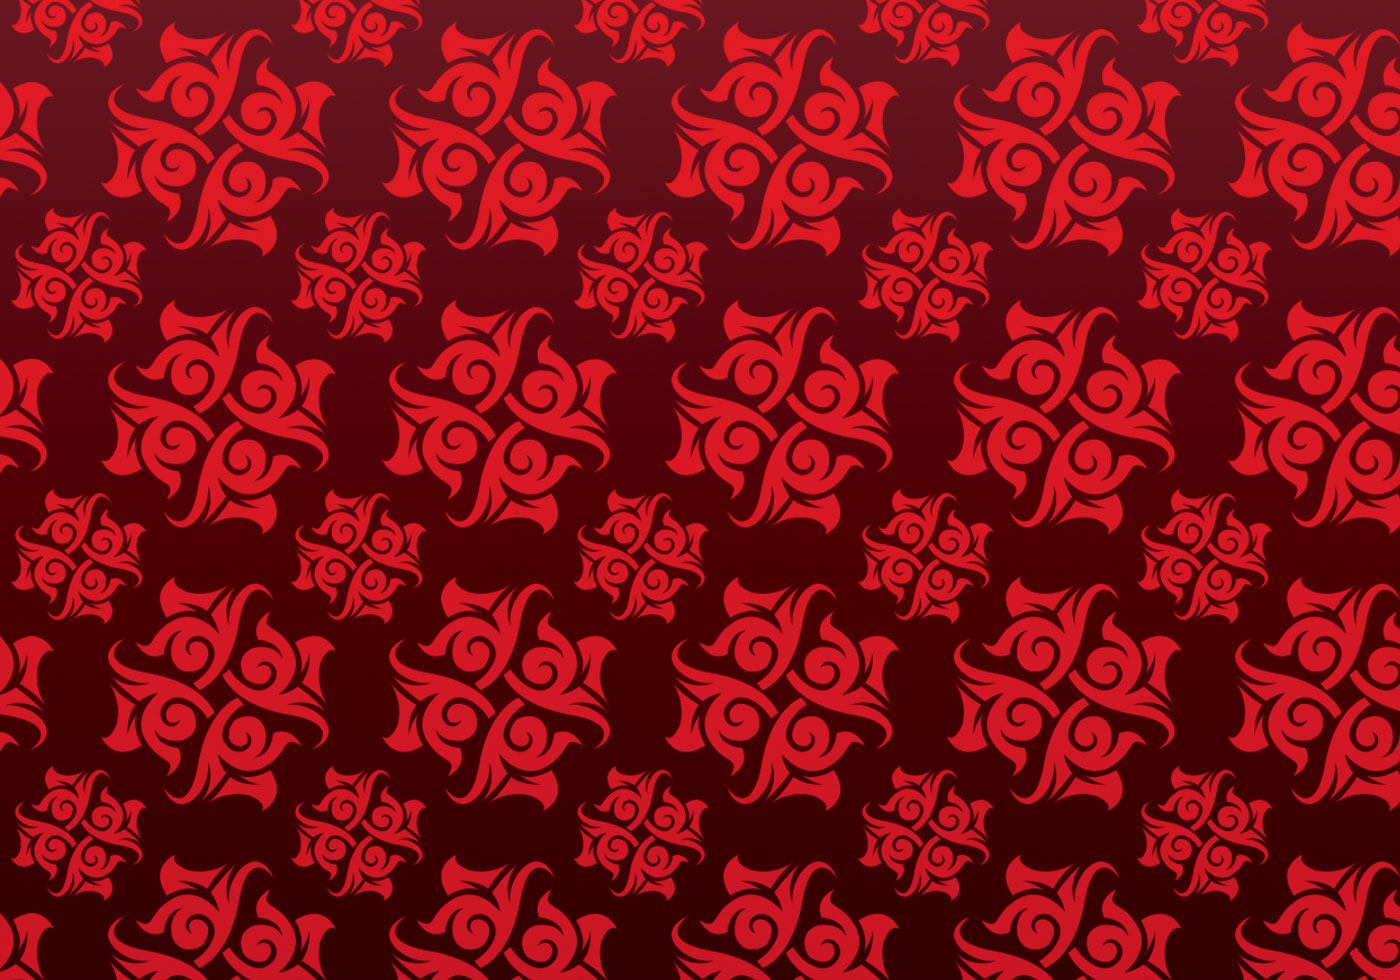 red ornamental patterned background psd